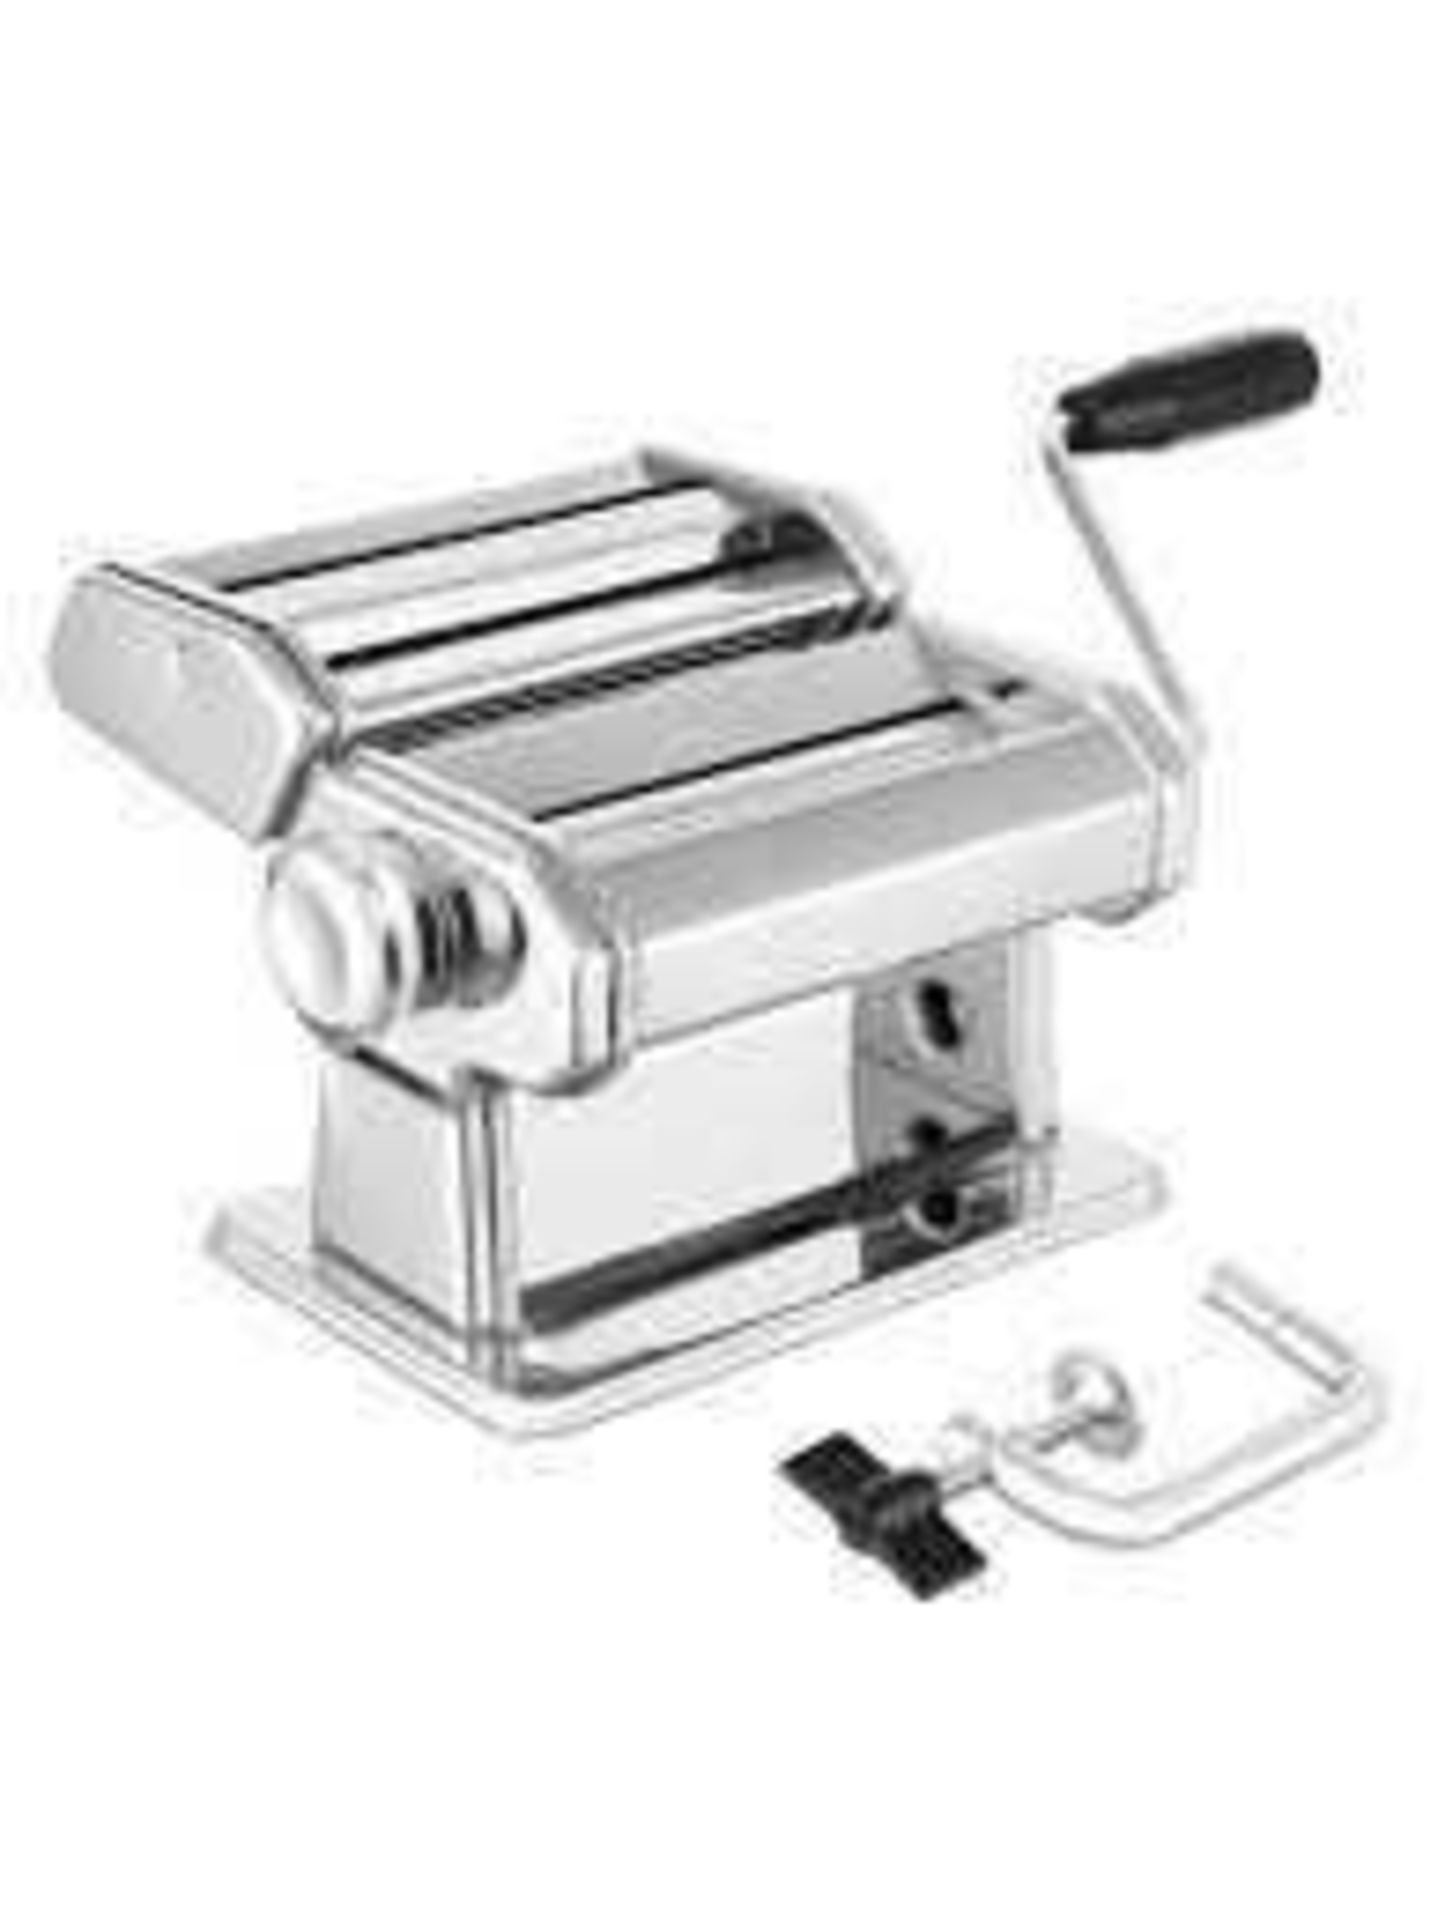 RRP £35 To £50 Each Sorted Box John Lewis Kitchen Items To Include Pasta Machine And Ceramic Knife B